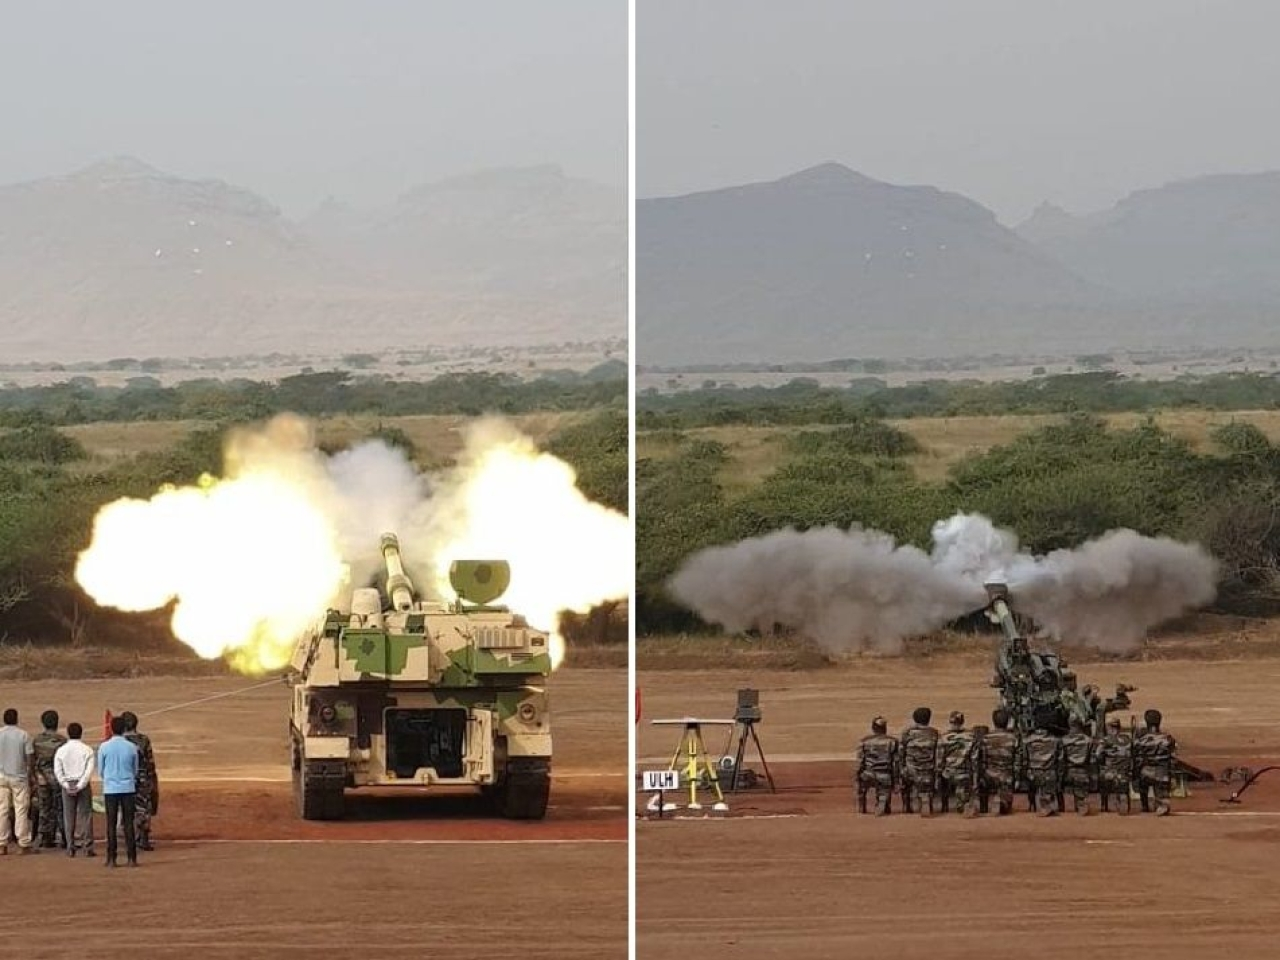 K9 Vajra (left) and M777 (right) artillery guns to be inducted by the army today. (@rahulsinghx/Twitter)